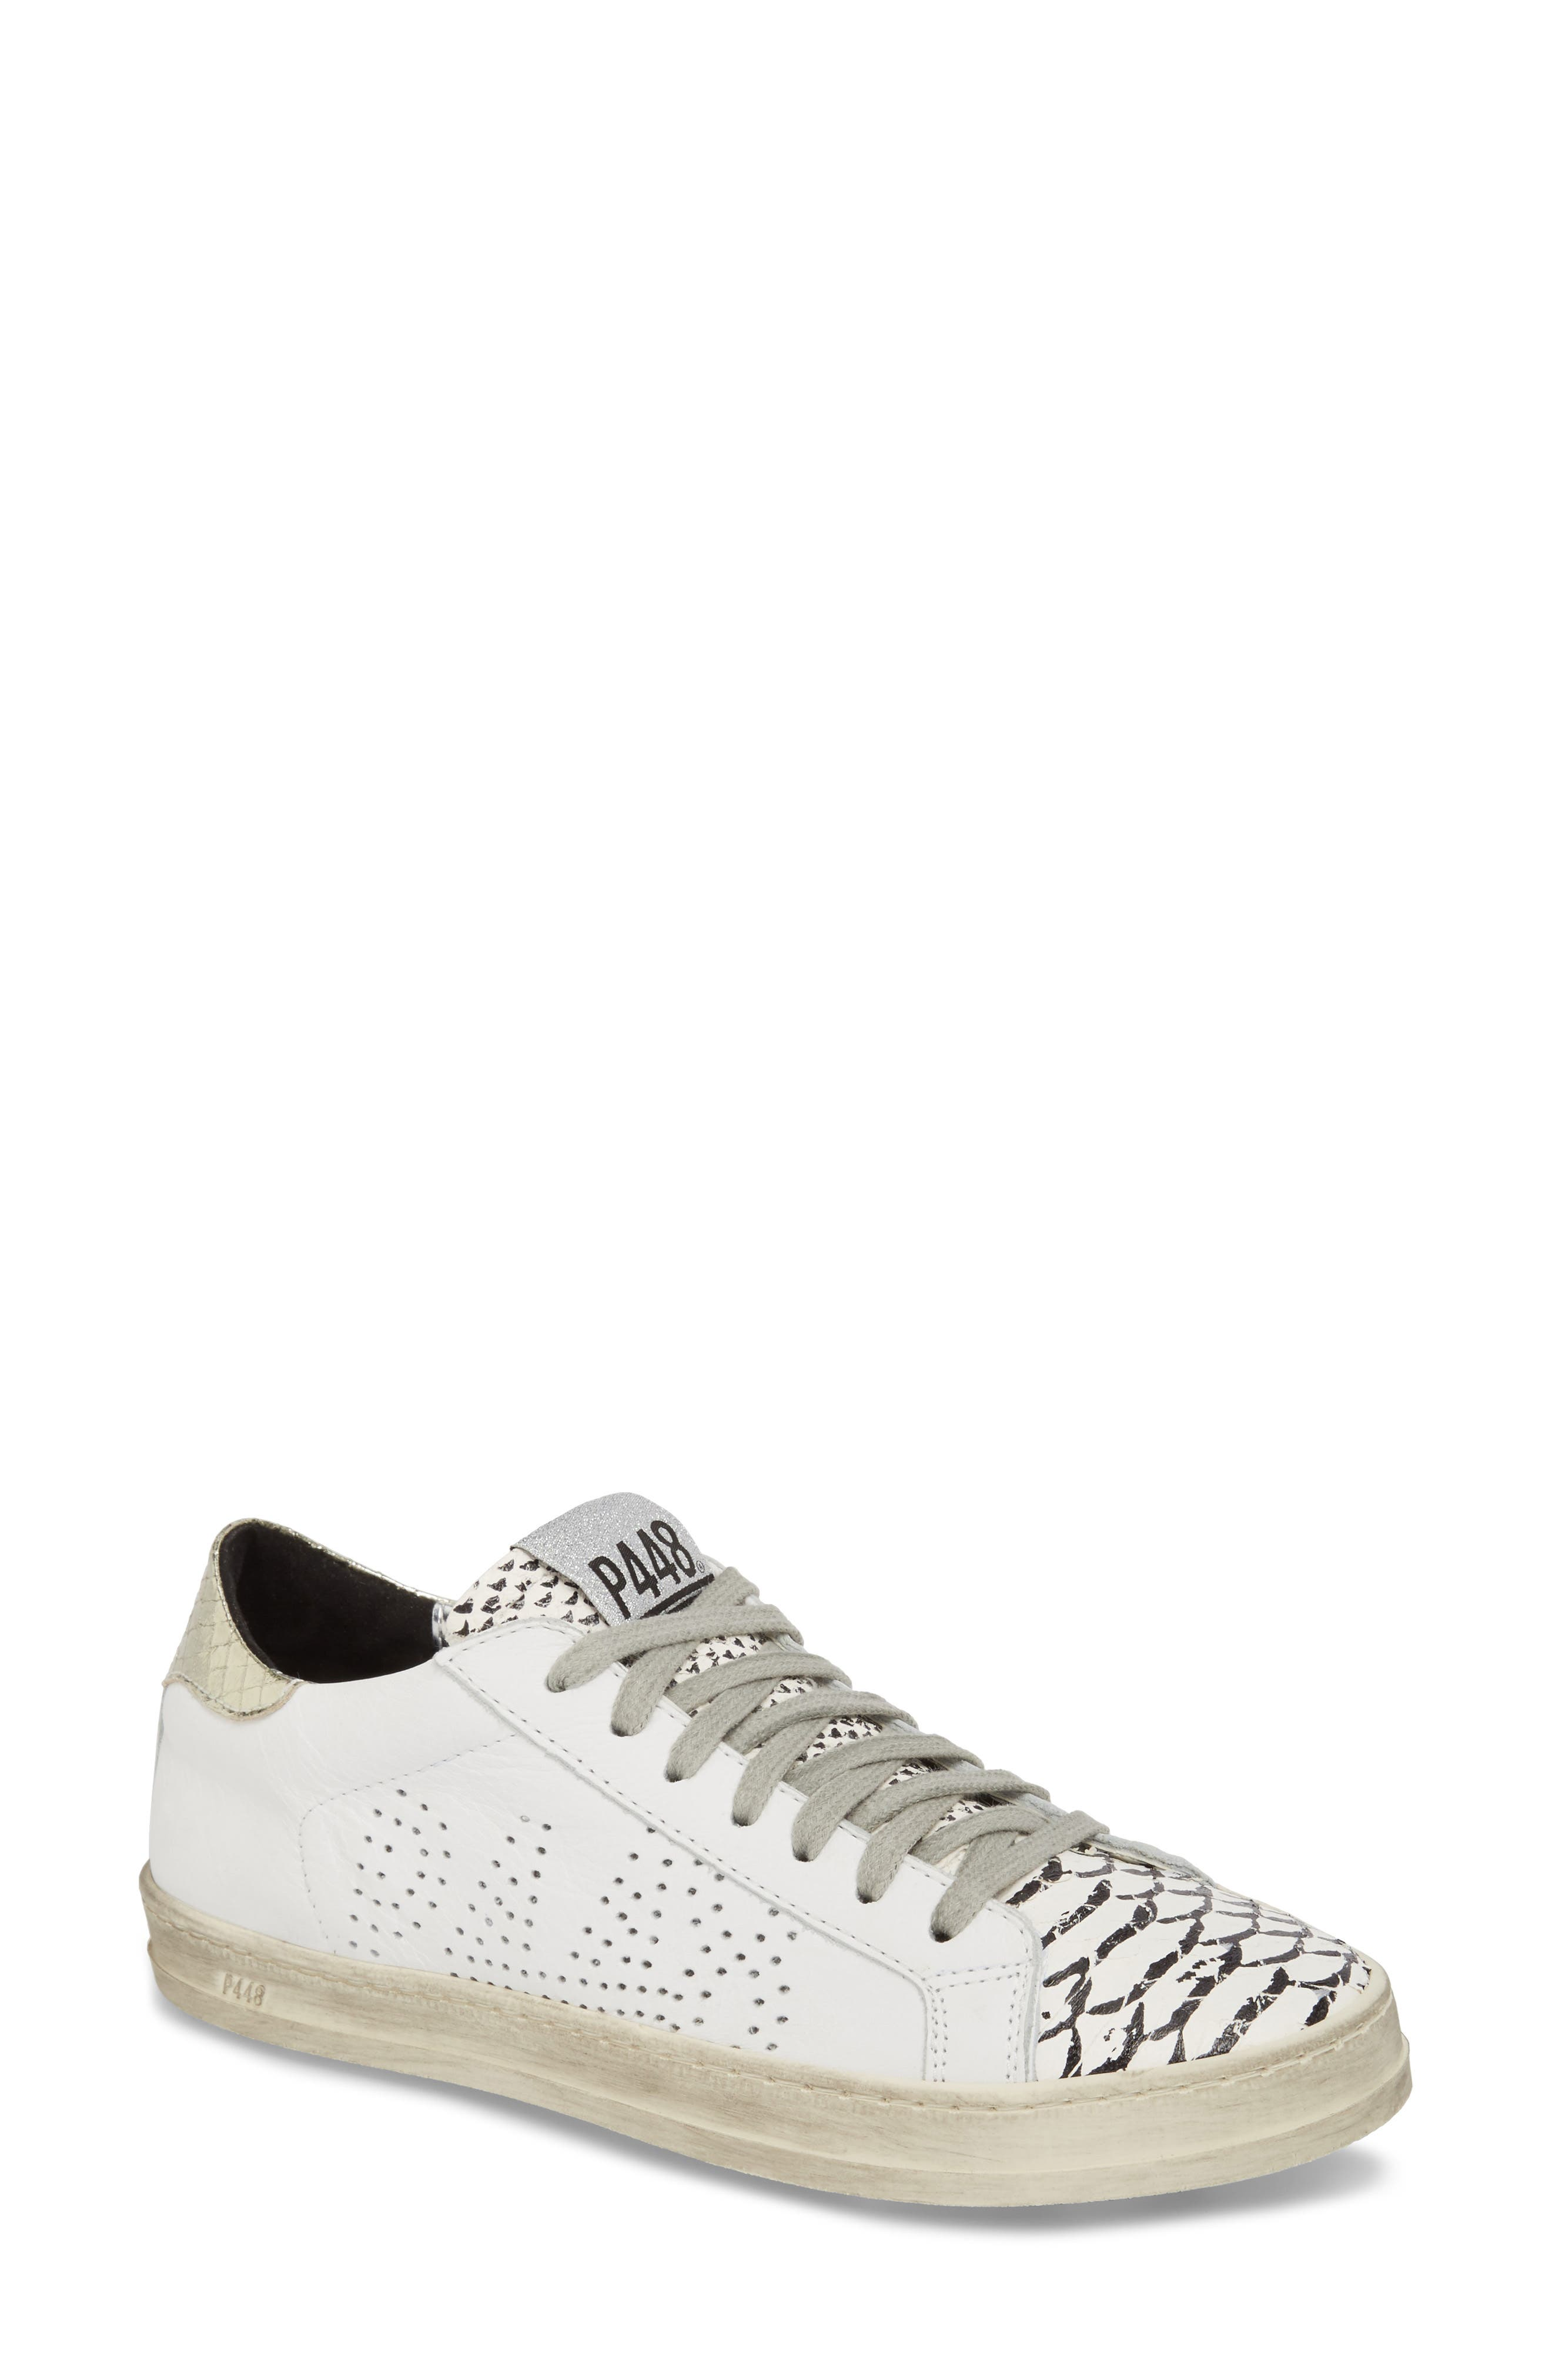 Women'S John Perforated Leather & Snake Print Lace Up Sneakers in White Printed